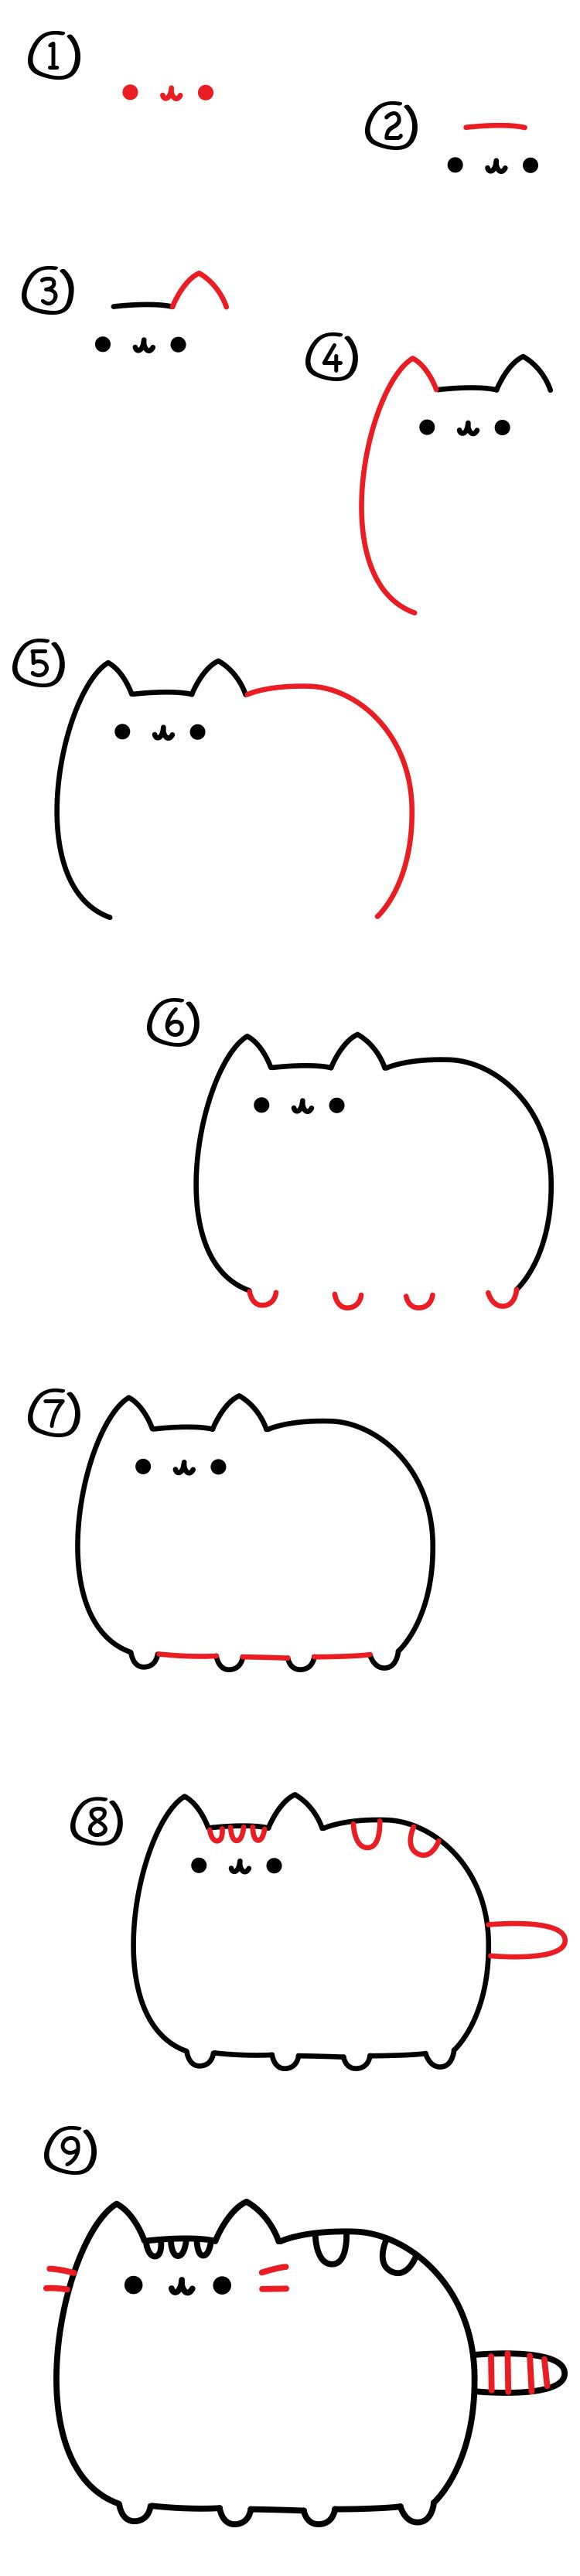 how to draw the pusheen cat art for kids hub Искусство